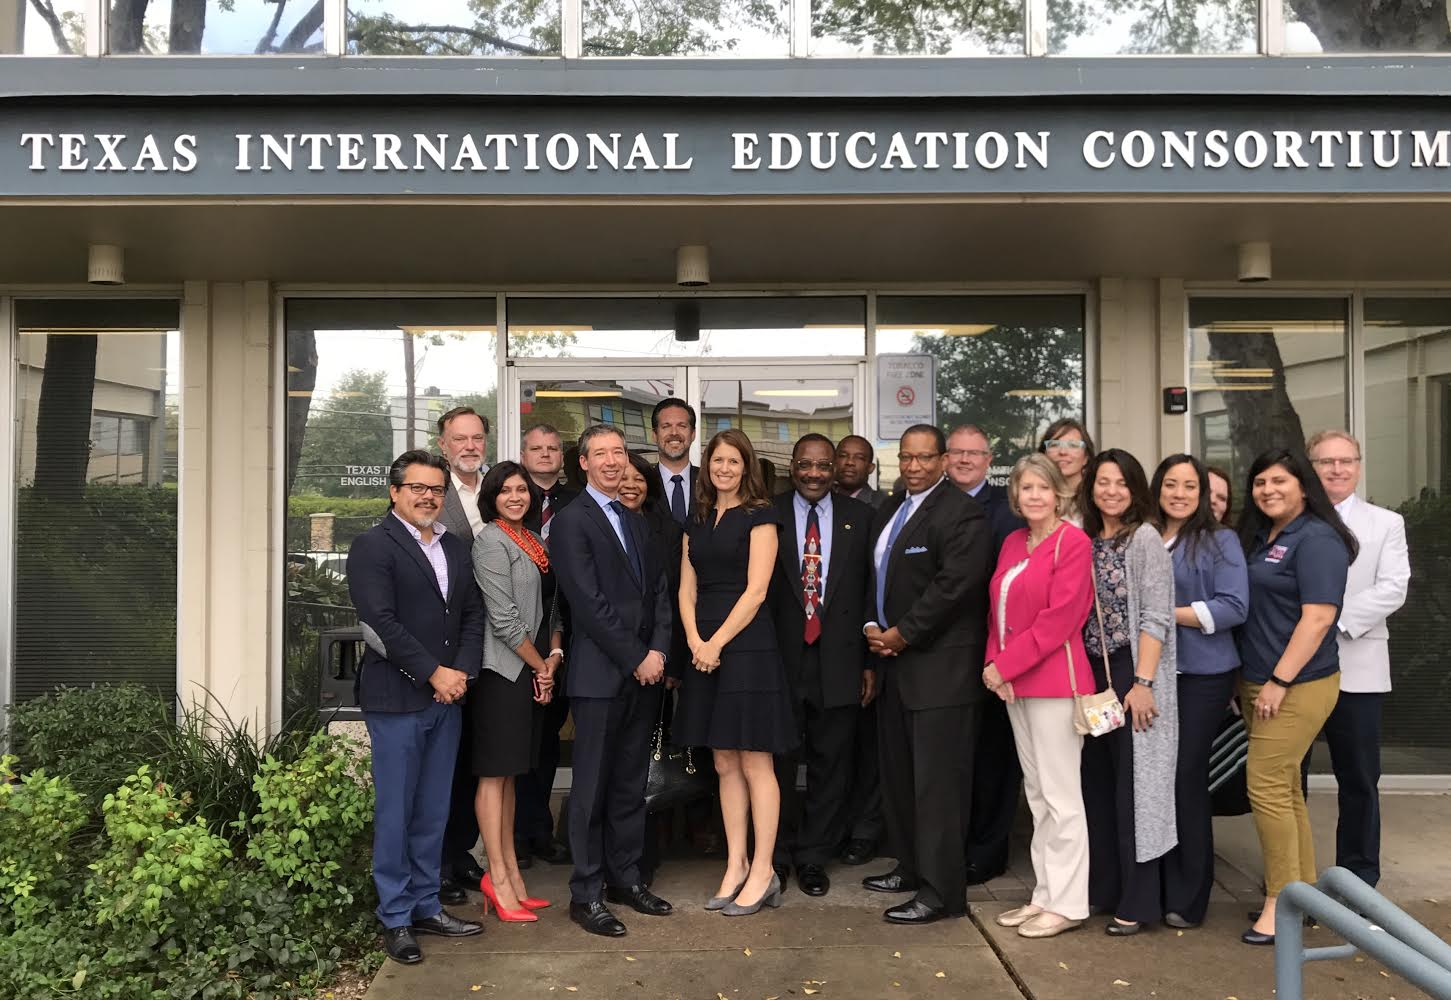 Group photo of the TIEC Operating Council